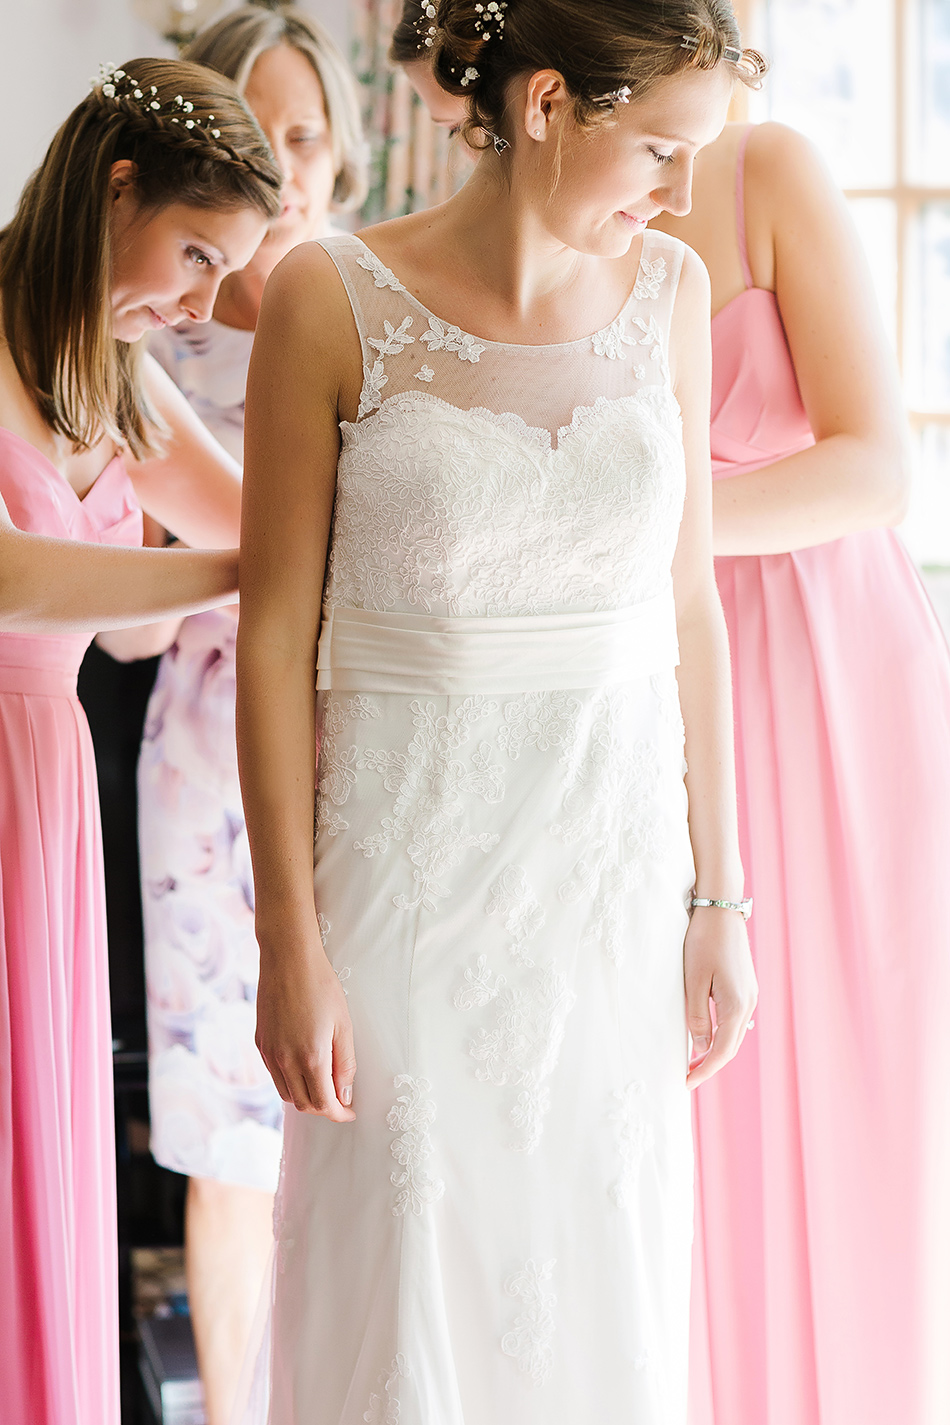 pastel pink and soft pink or peach bridesmaids dresses for wedding day